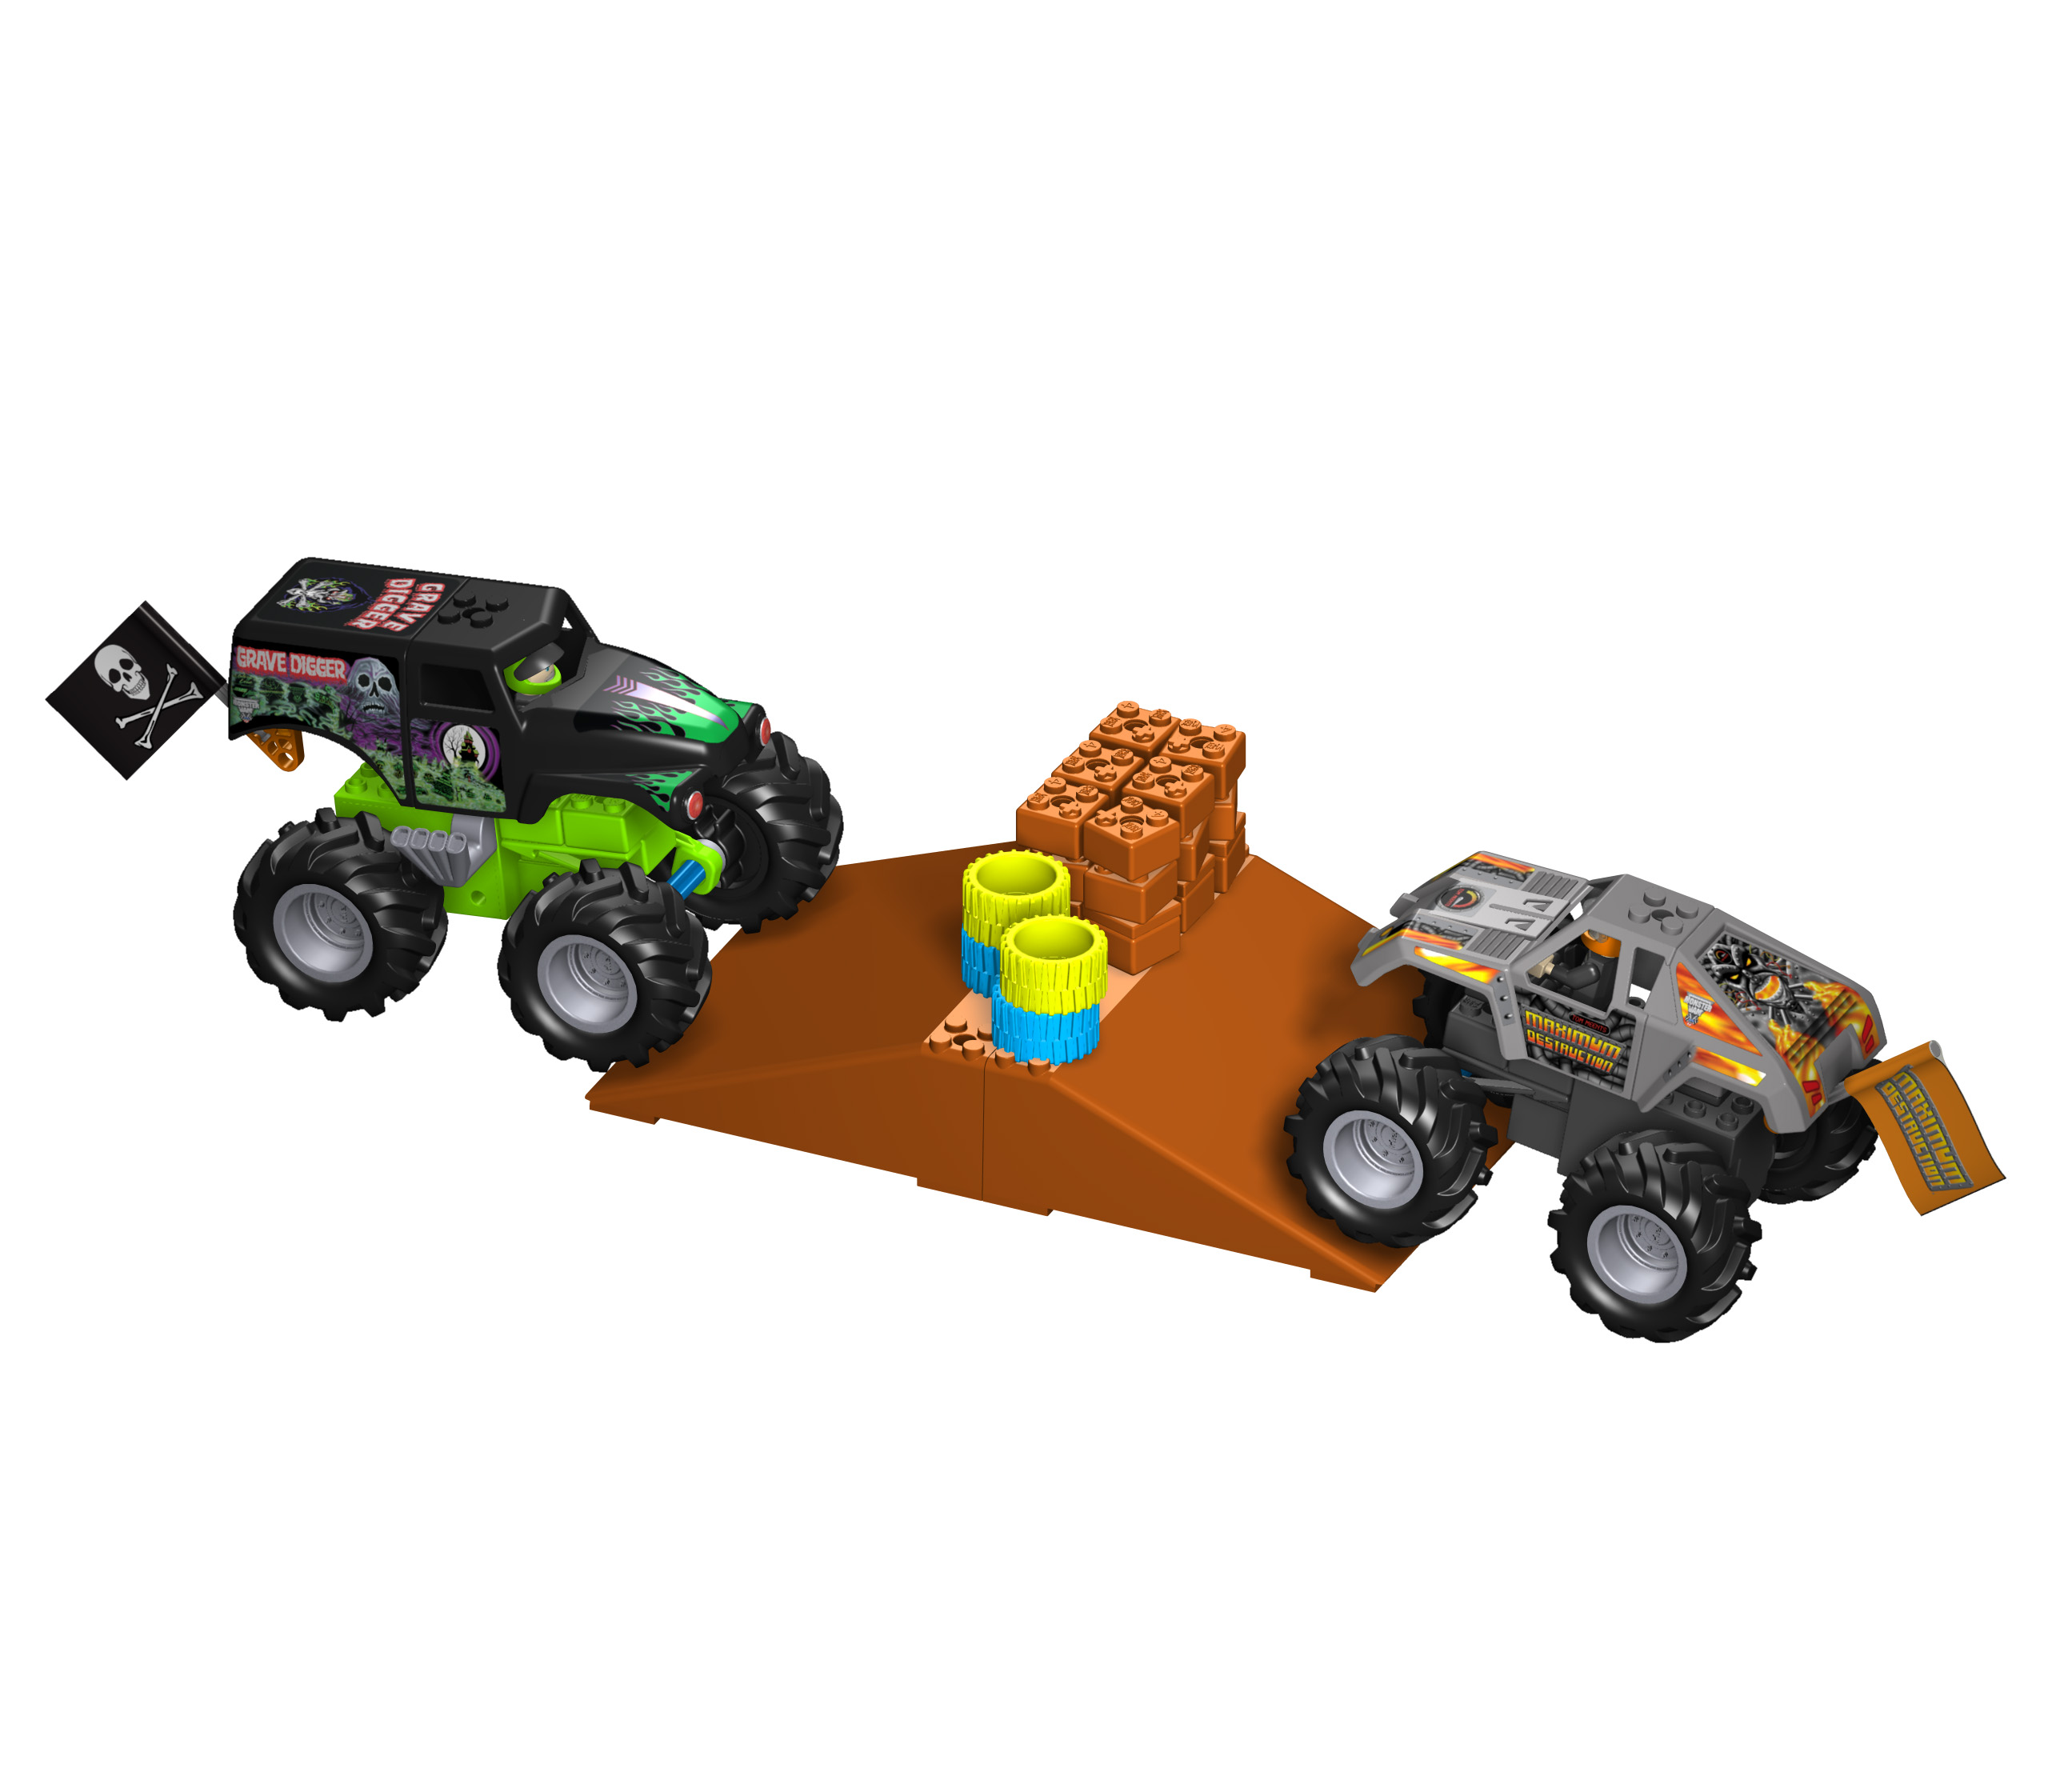 custom rc monster trucks with Grave Digger Toy Monster Truck on Rc Clod Buster Kit 58065 also Monster Truck 6x6 likewise Kevs Bench We Need More Injection Molded Bodies also Spec Trophy Truck Class 6100 2 moreover Red Bull Helmet Stickers.